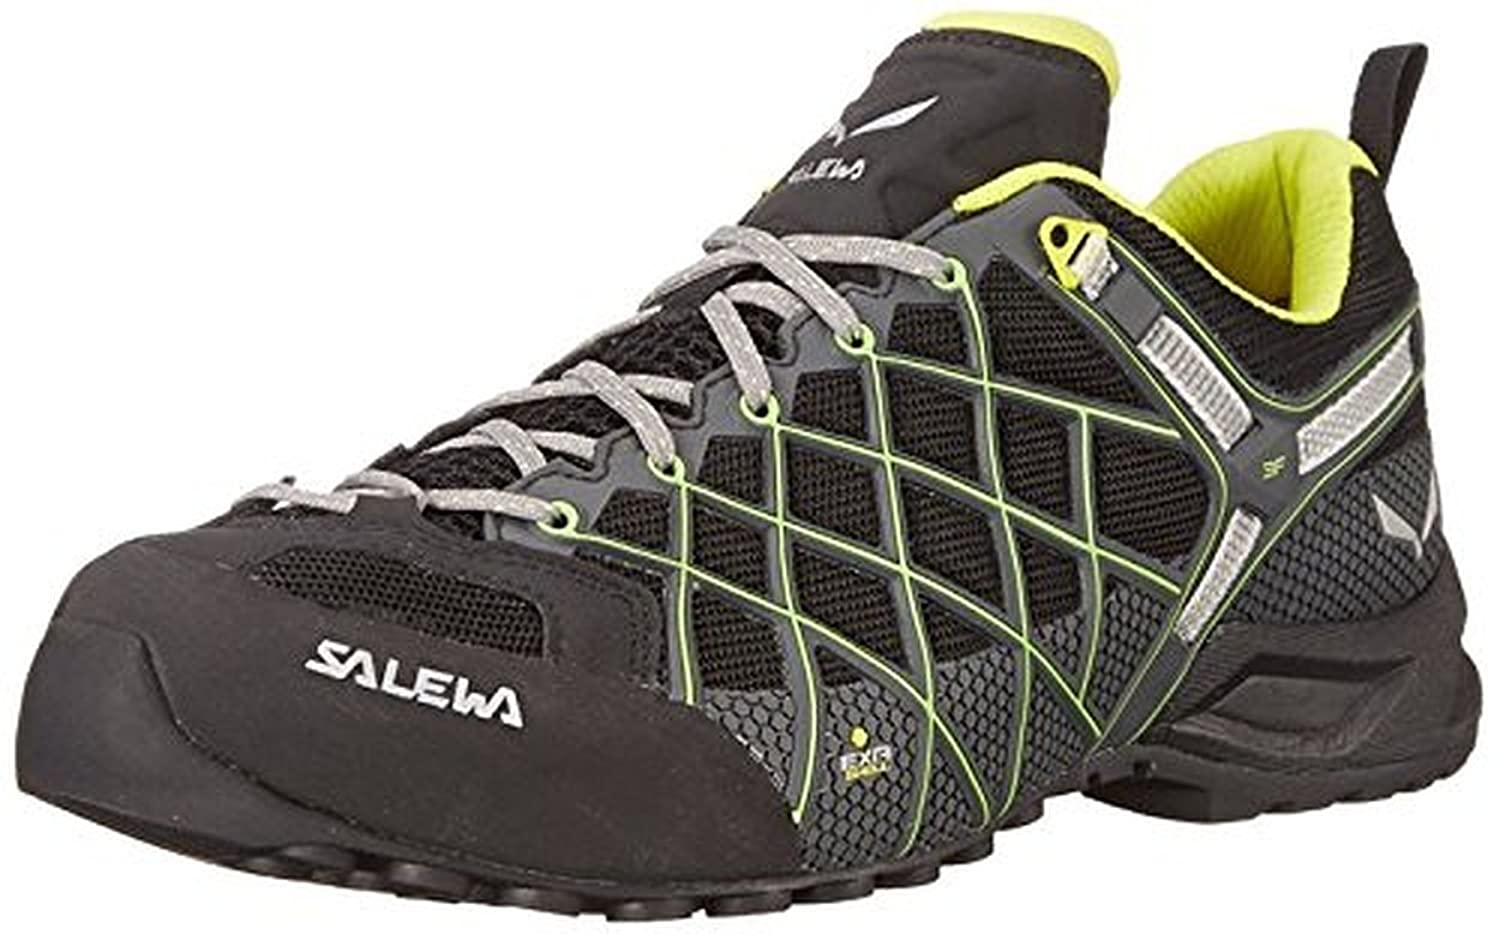 Salewa Men's Wildfire S GTX Shoes Black / Ciitro 8 & Etip Lite Gripper Glove Bundle